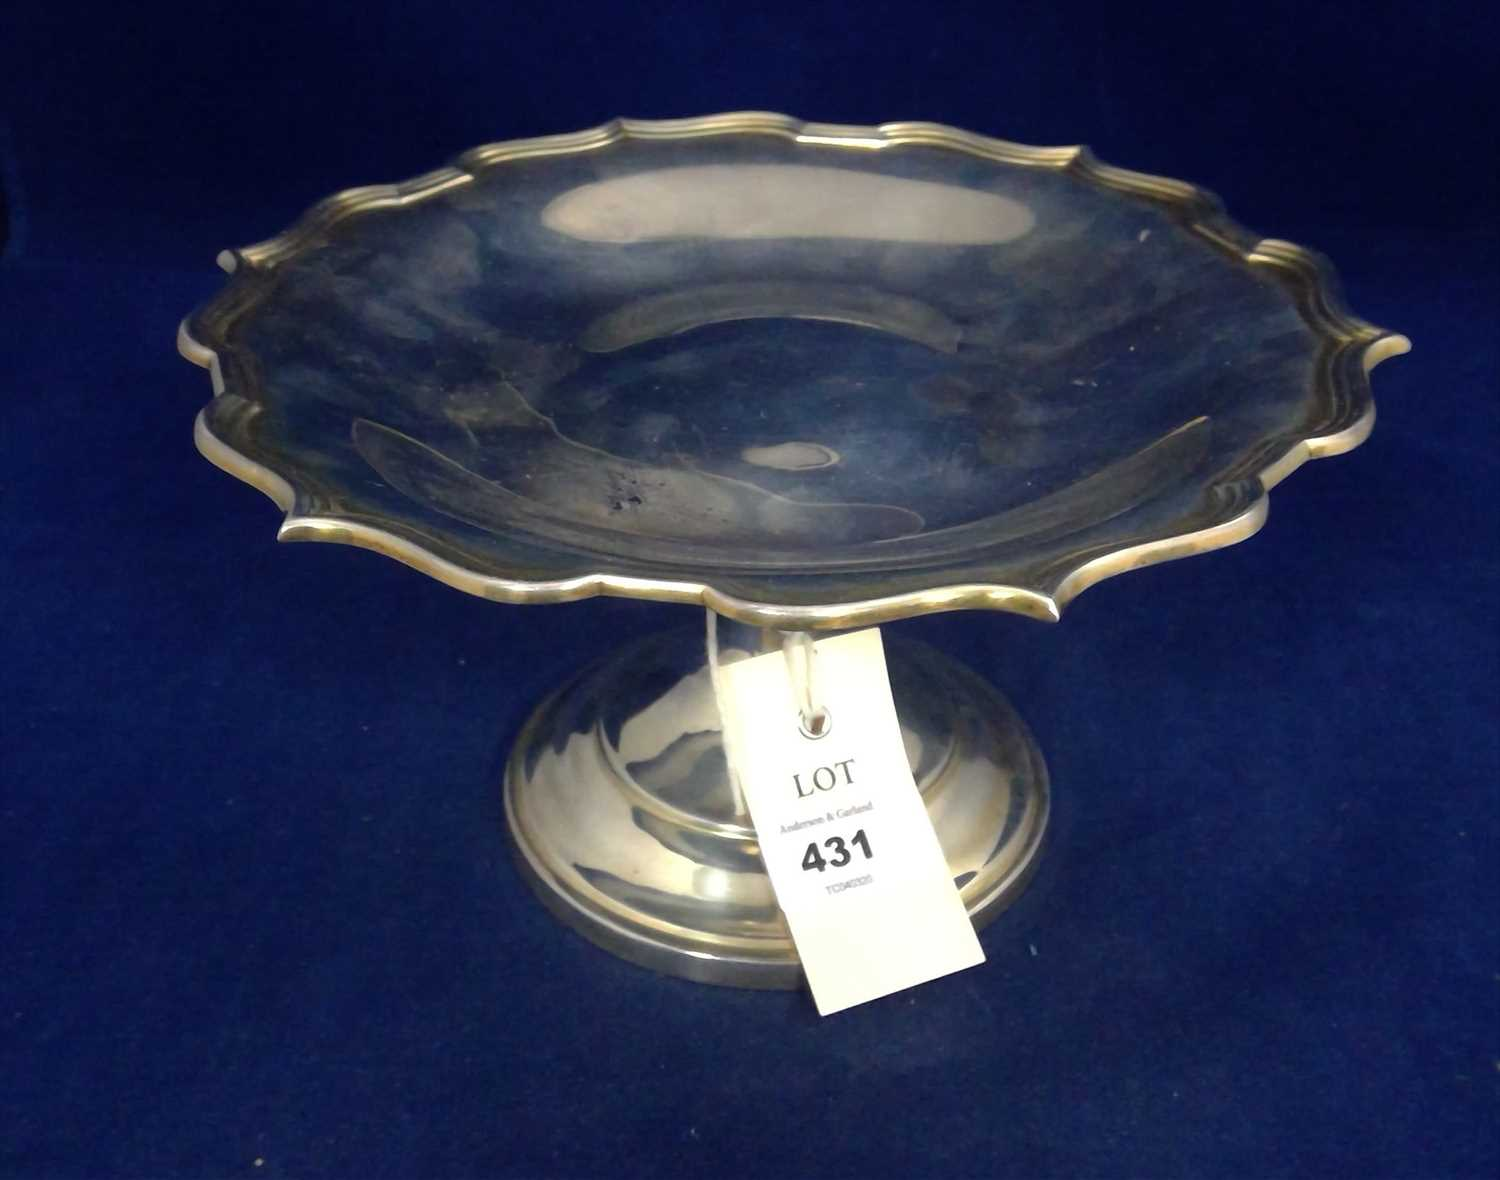 Lot 431-Silver tazza